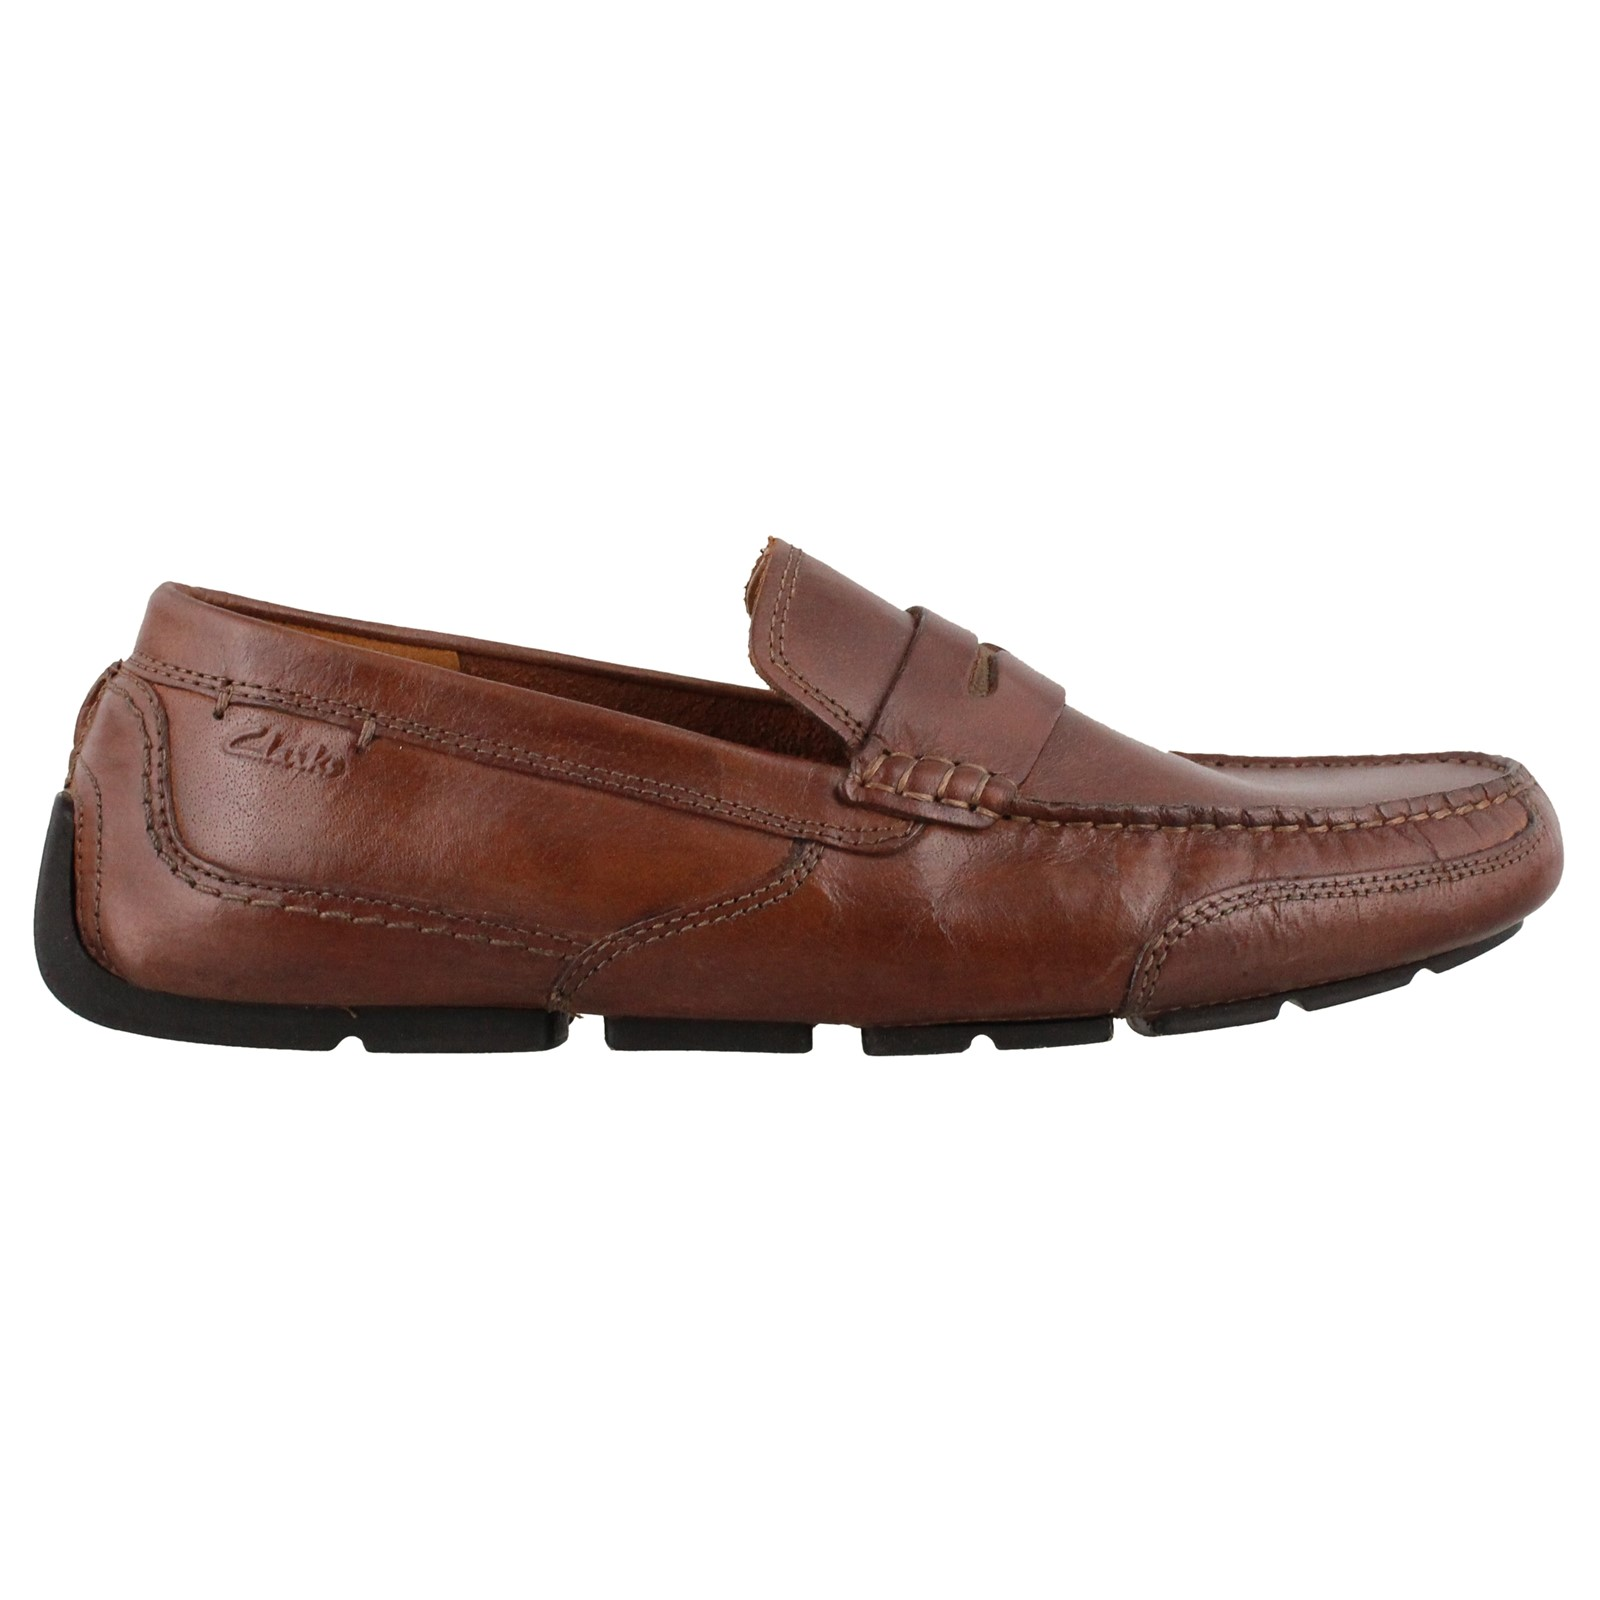 Men's Clarks, Ashmont Way Slip on Driver